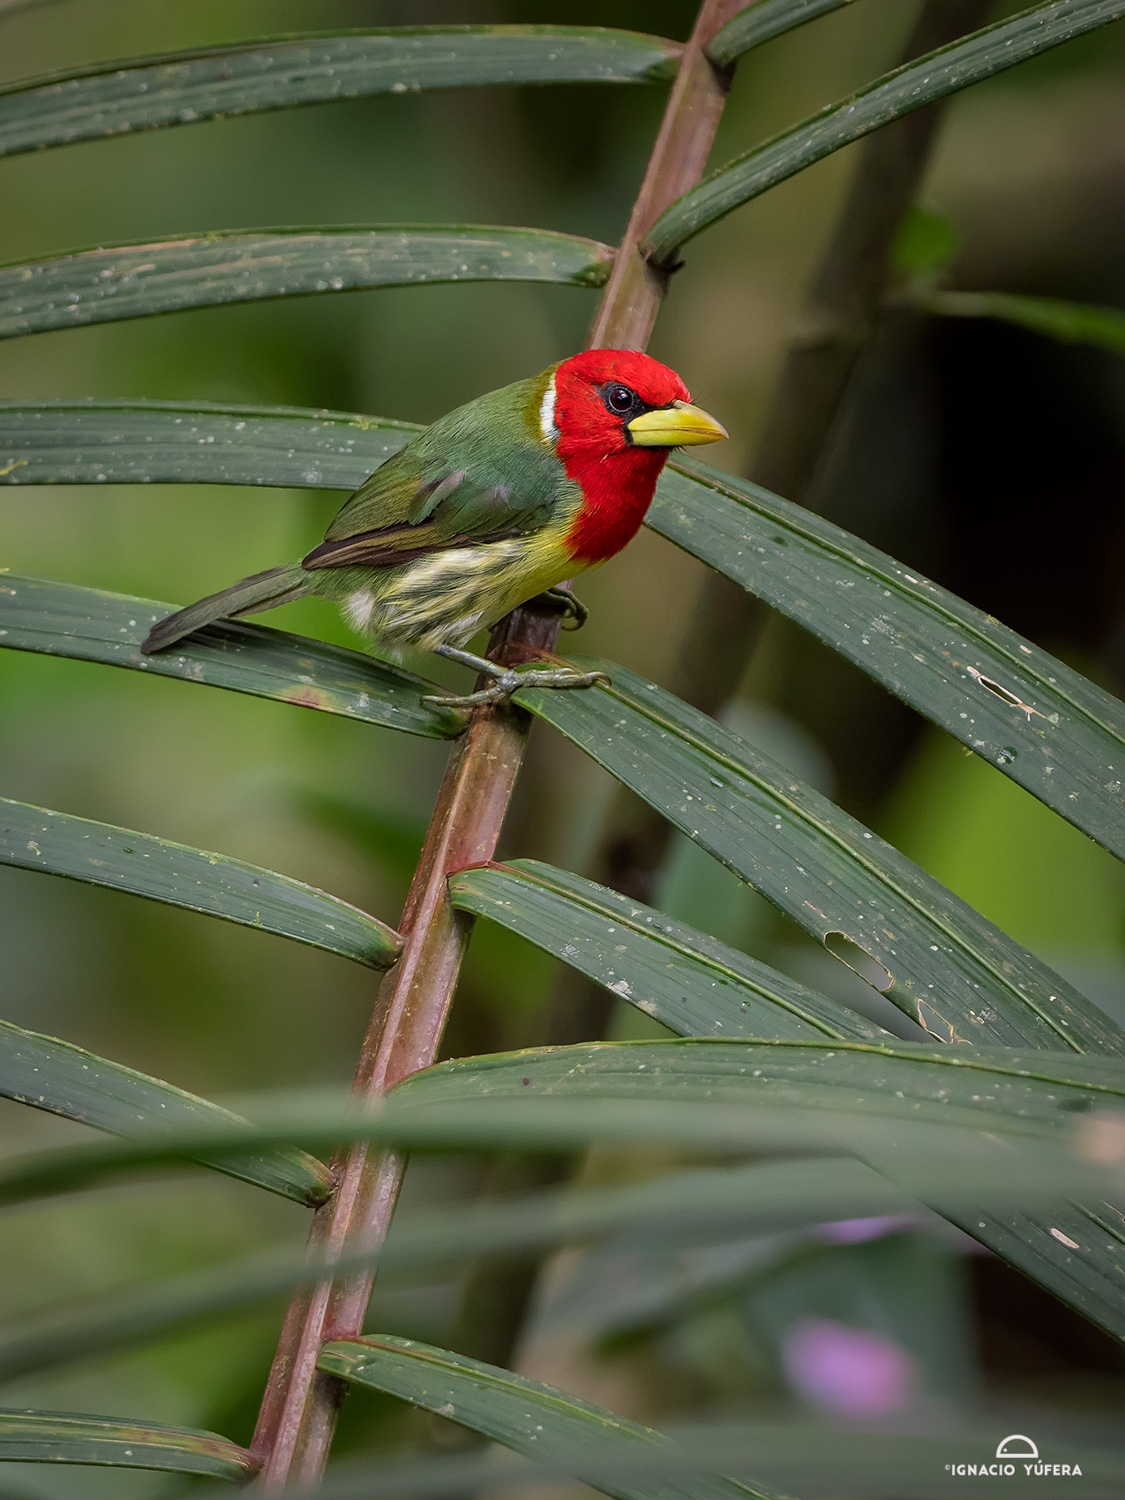 Red-headed Barbet (Eubucco bourcierii), Tandayapa, Ecuador